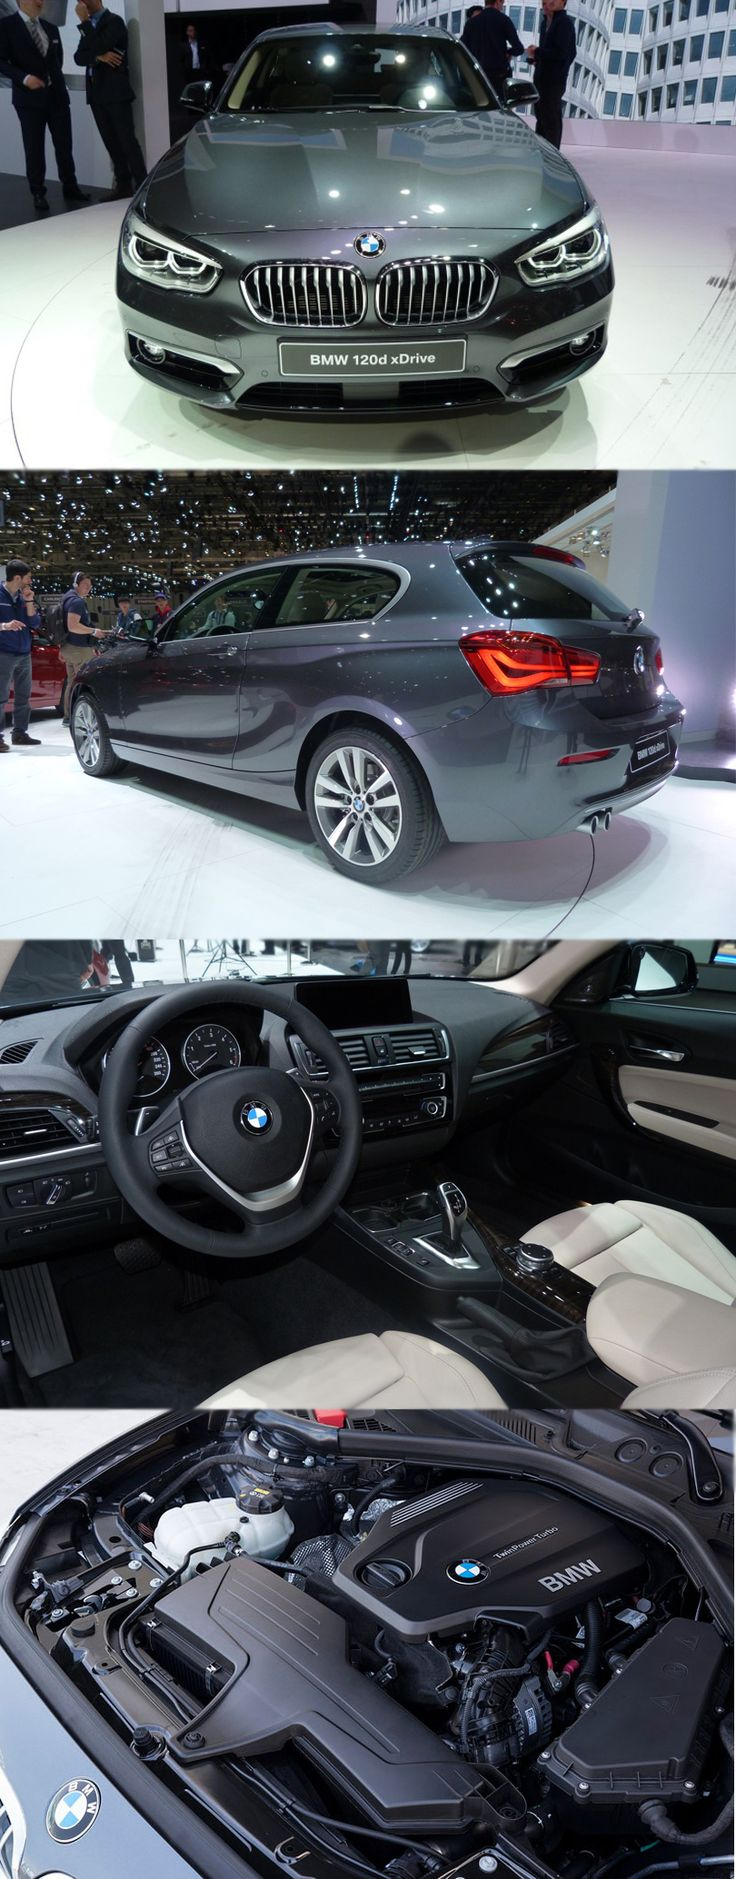 Why everyone is crazy for BMW 120d xDrive Engine? #BMW #120d #xDrive #Engine https://www.germancartech.co.uk/blog/bmw-120d-xdrive/